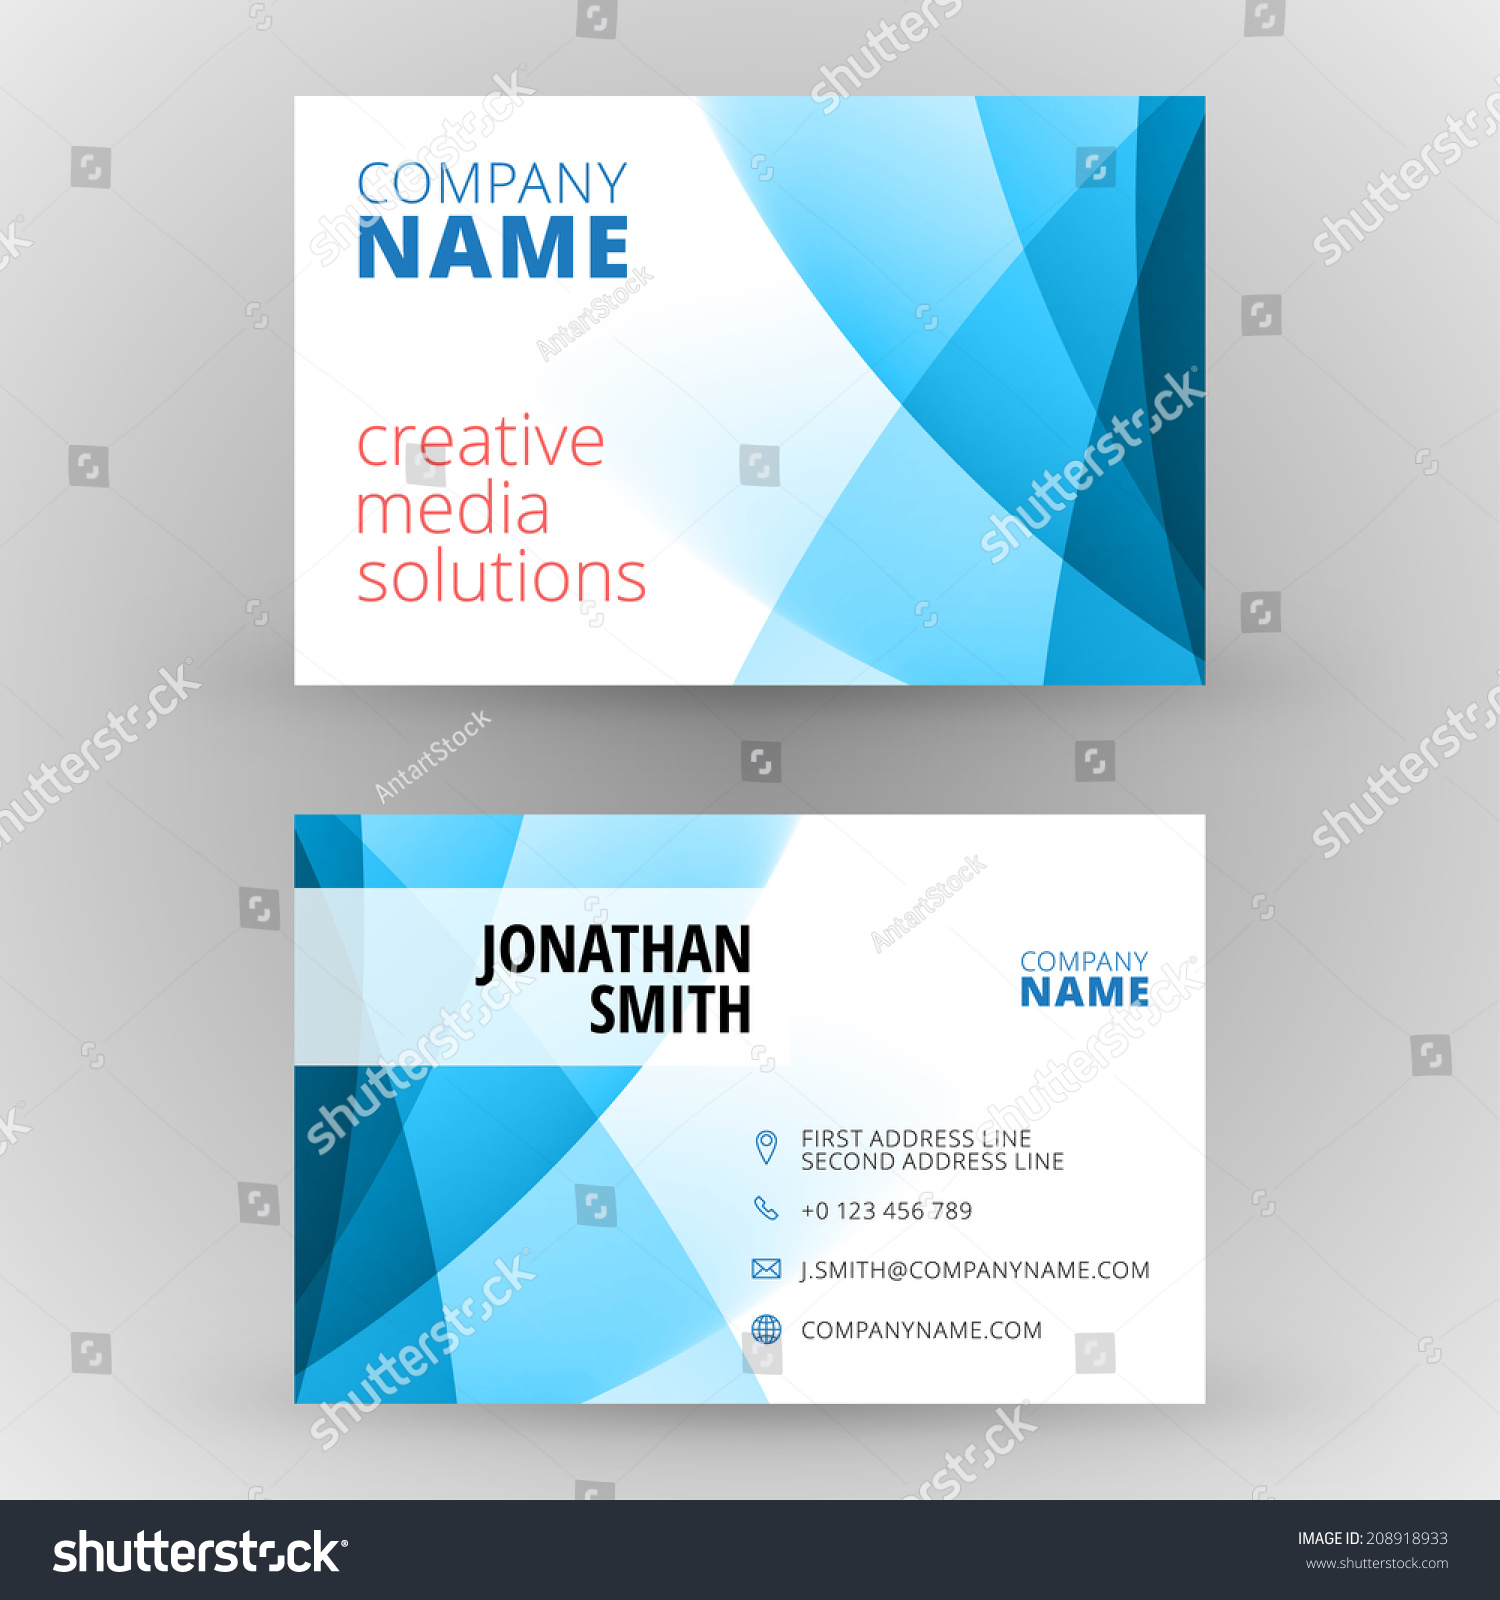 Business Card Design Template Vector Background Stock Vector ...